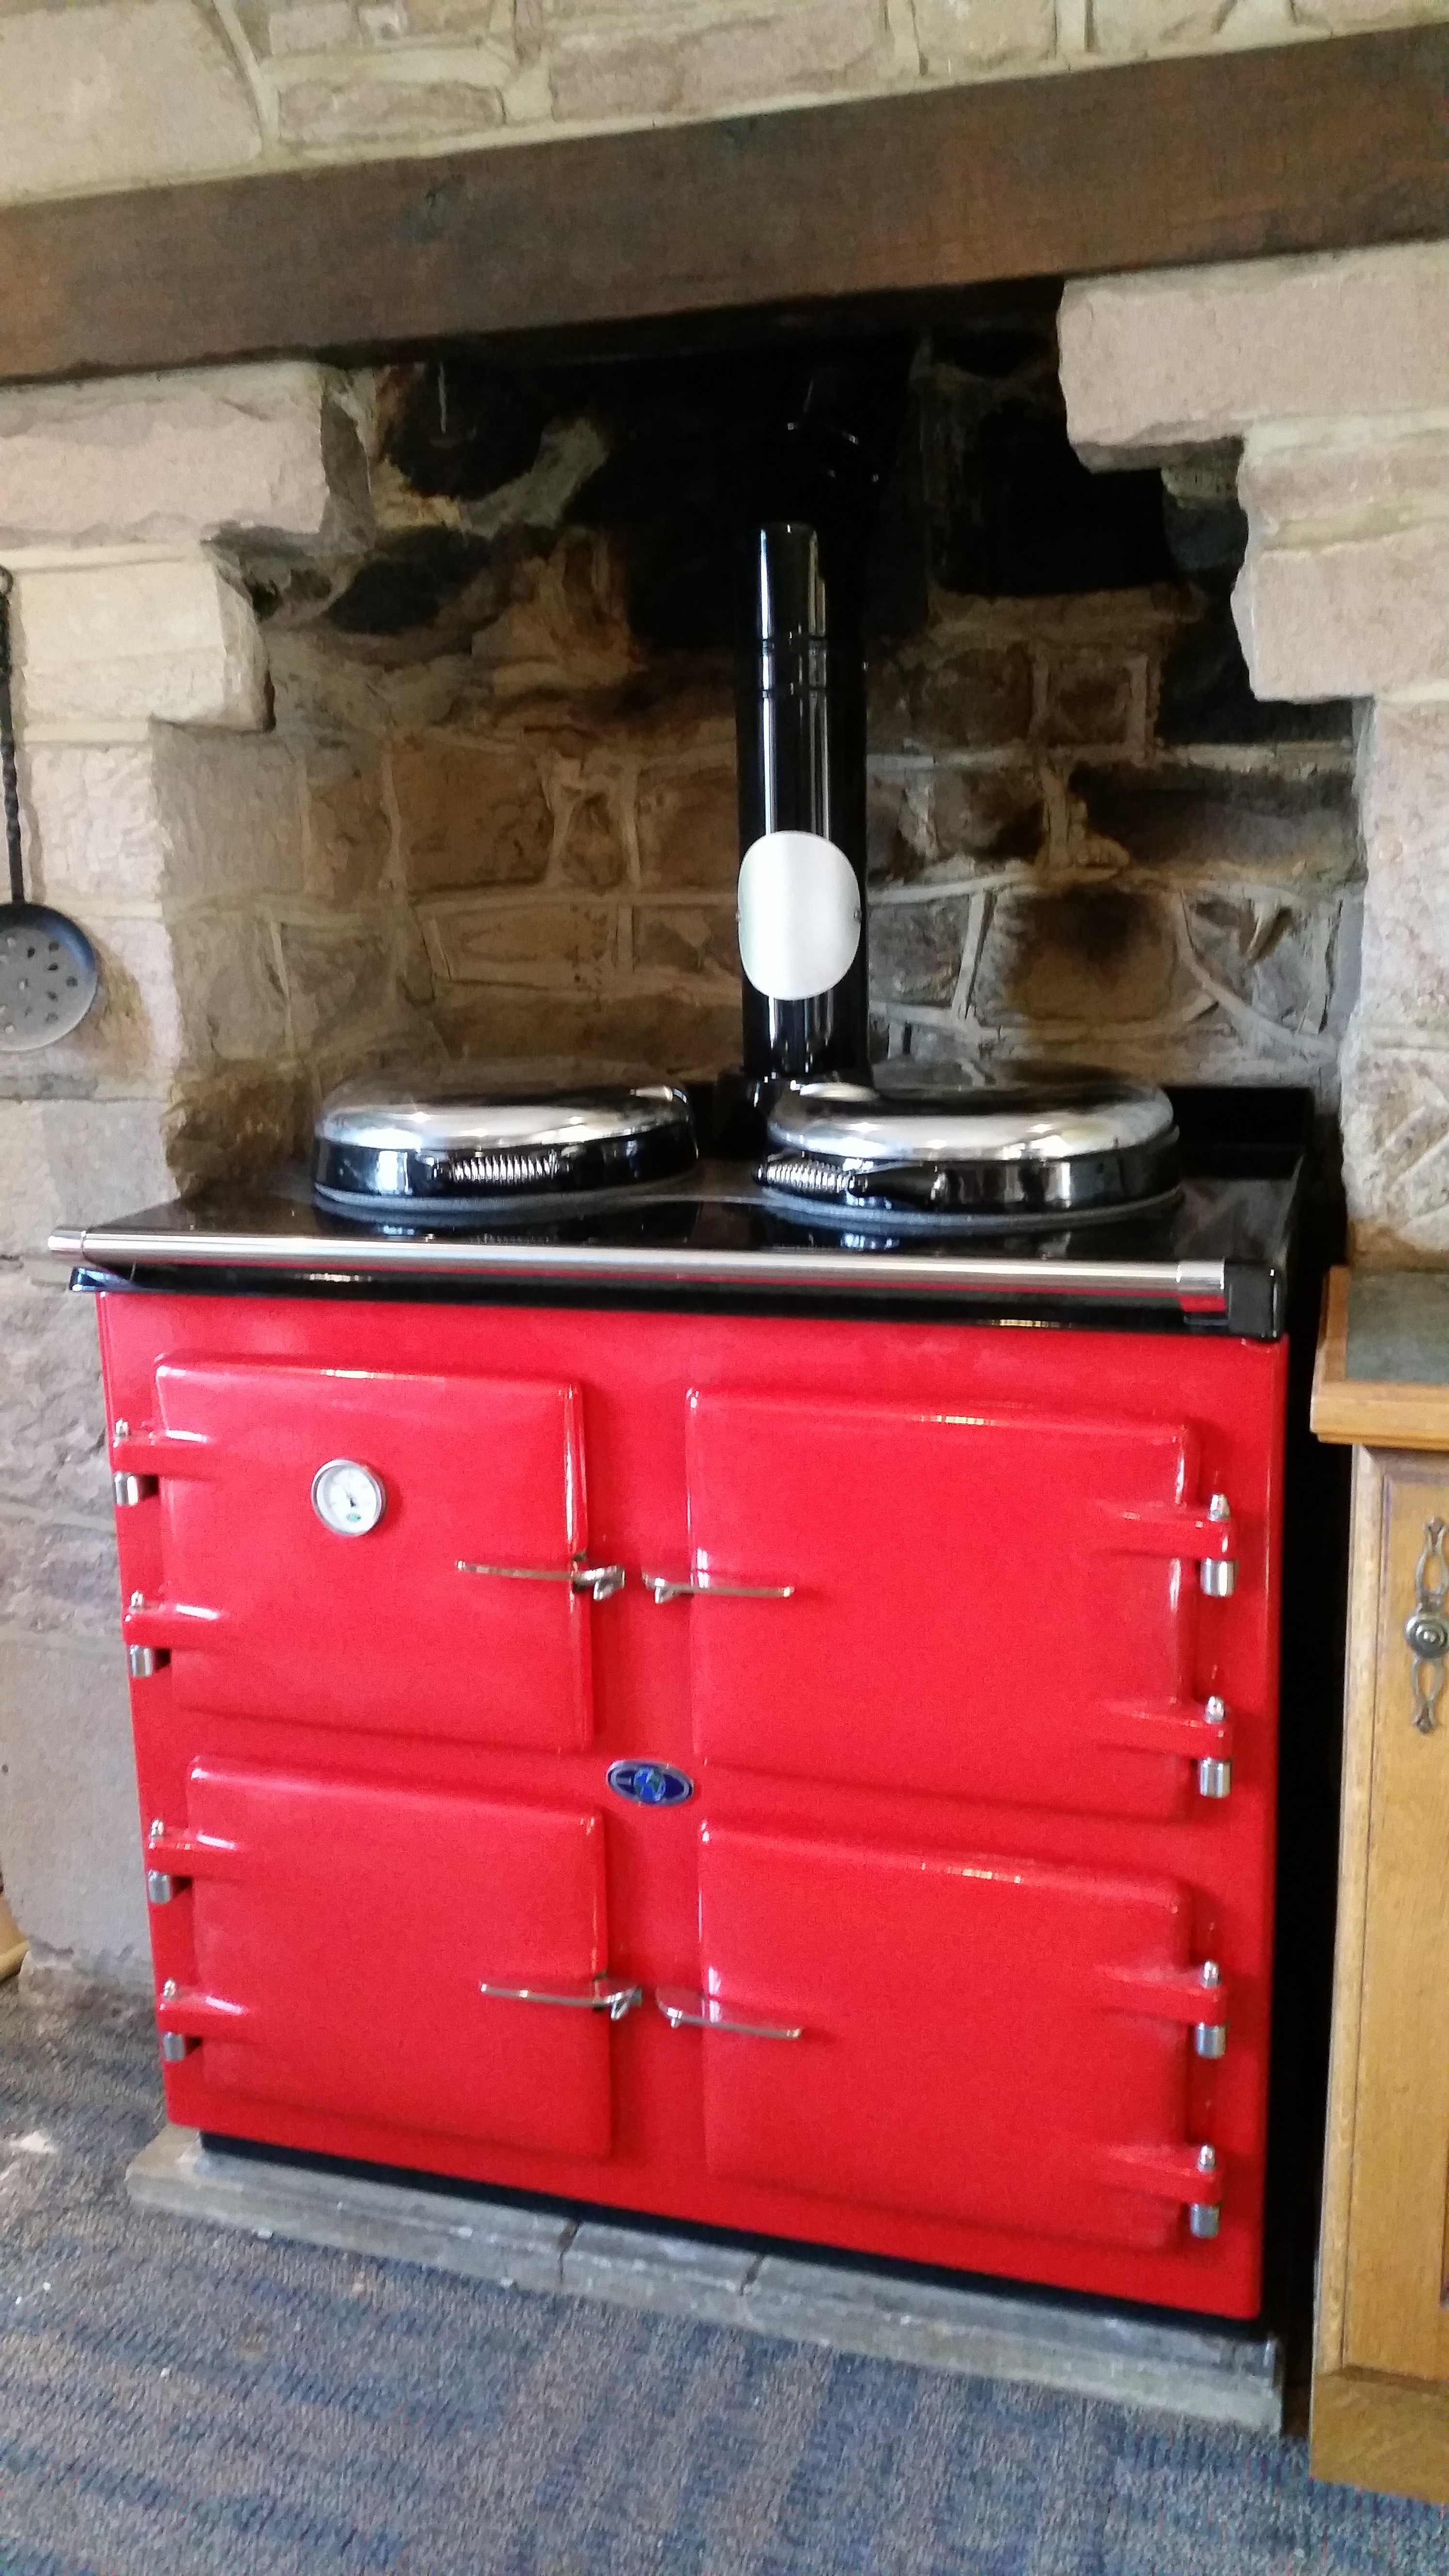 3 oven AGA cooker Red.